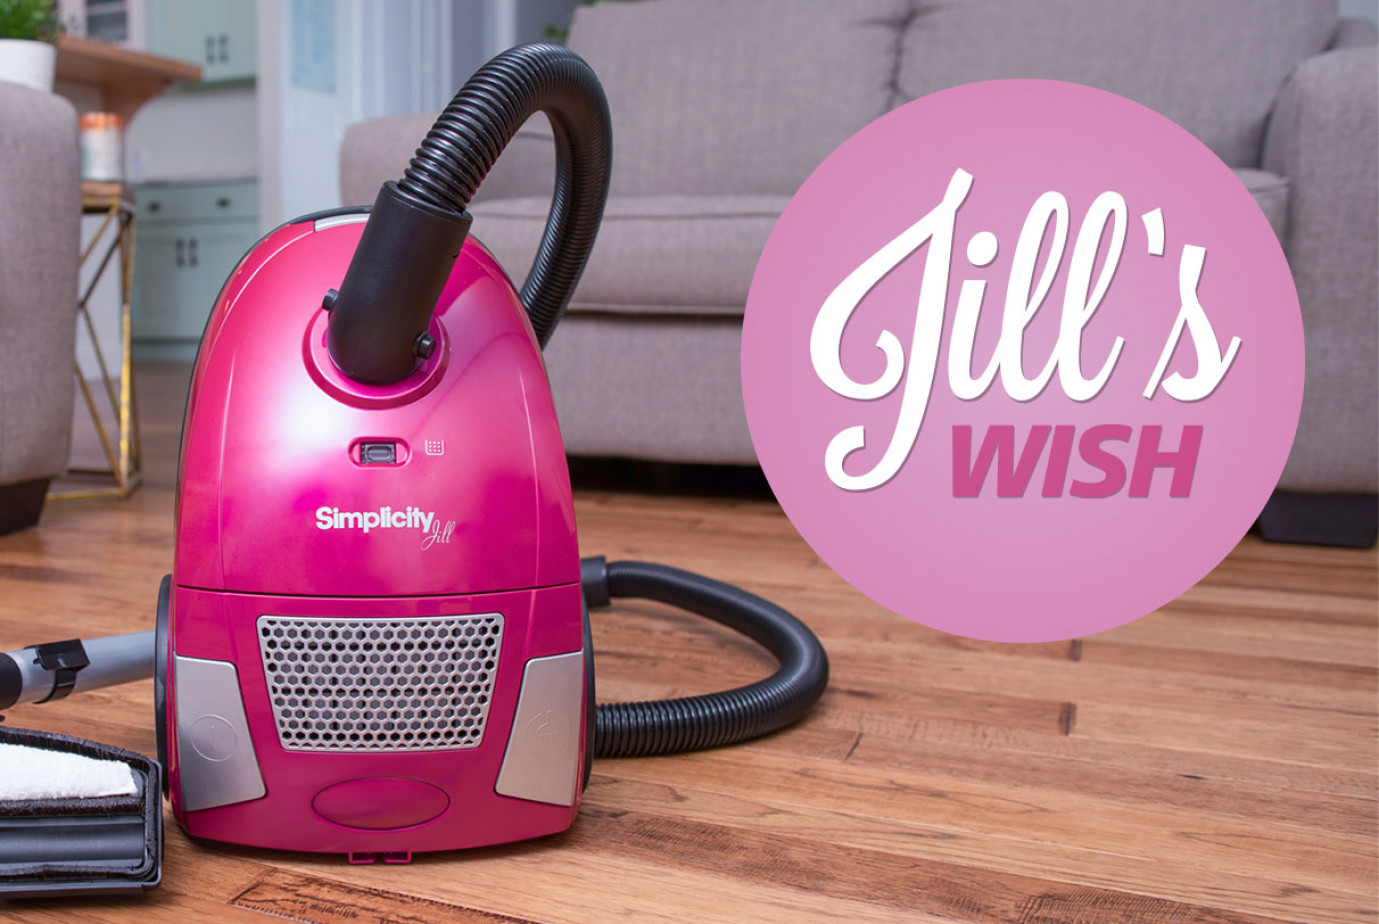 Simplicity Partners with Jill's Wish Breast Cancer Charity